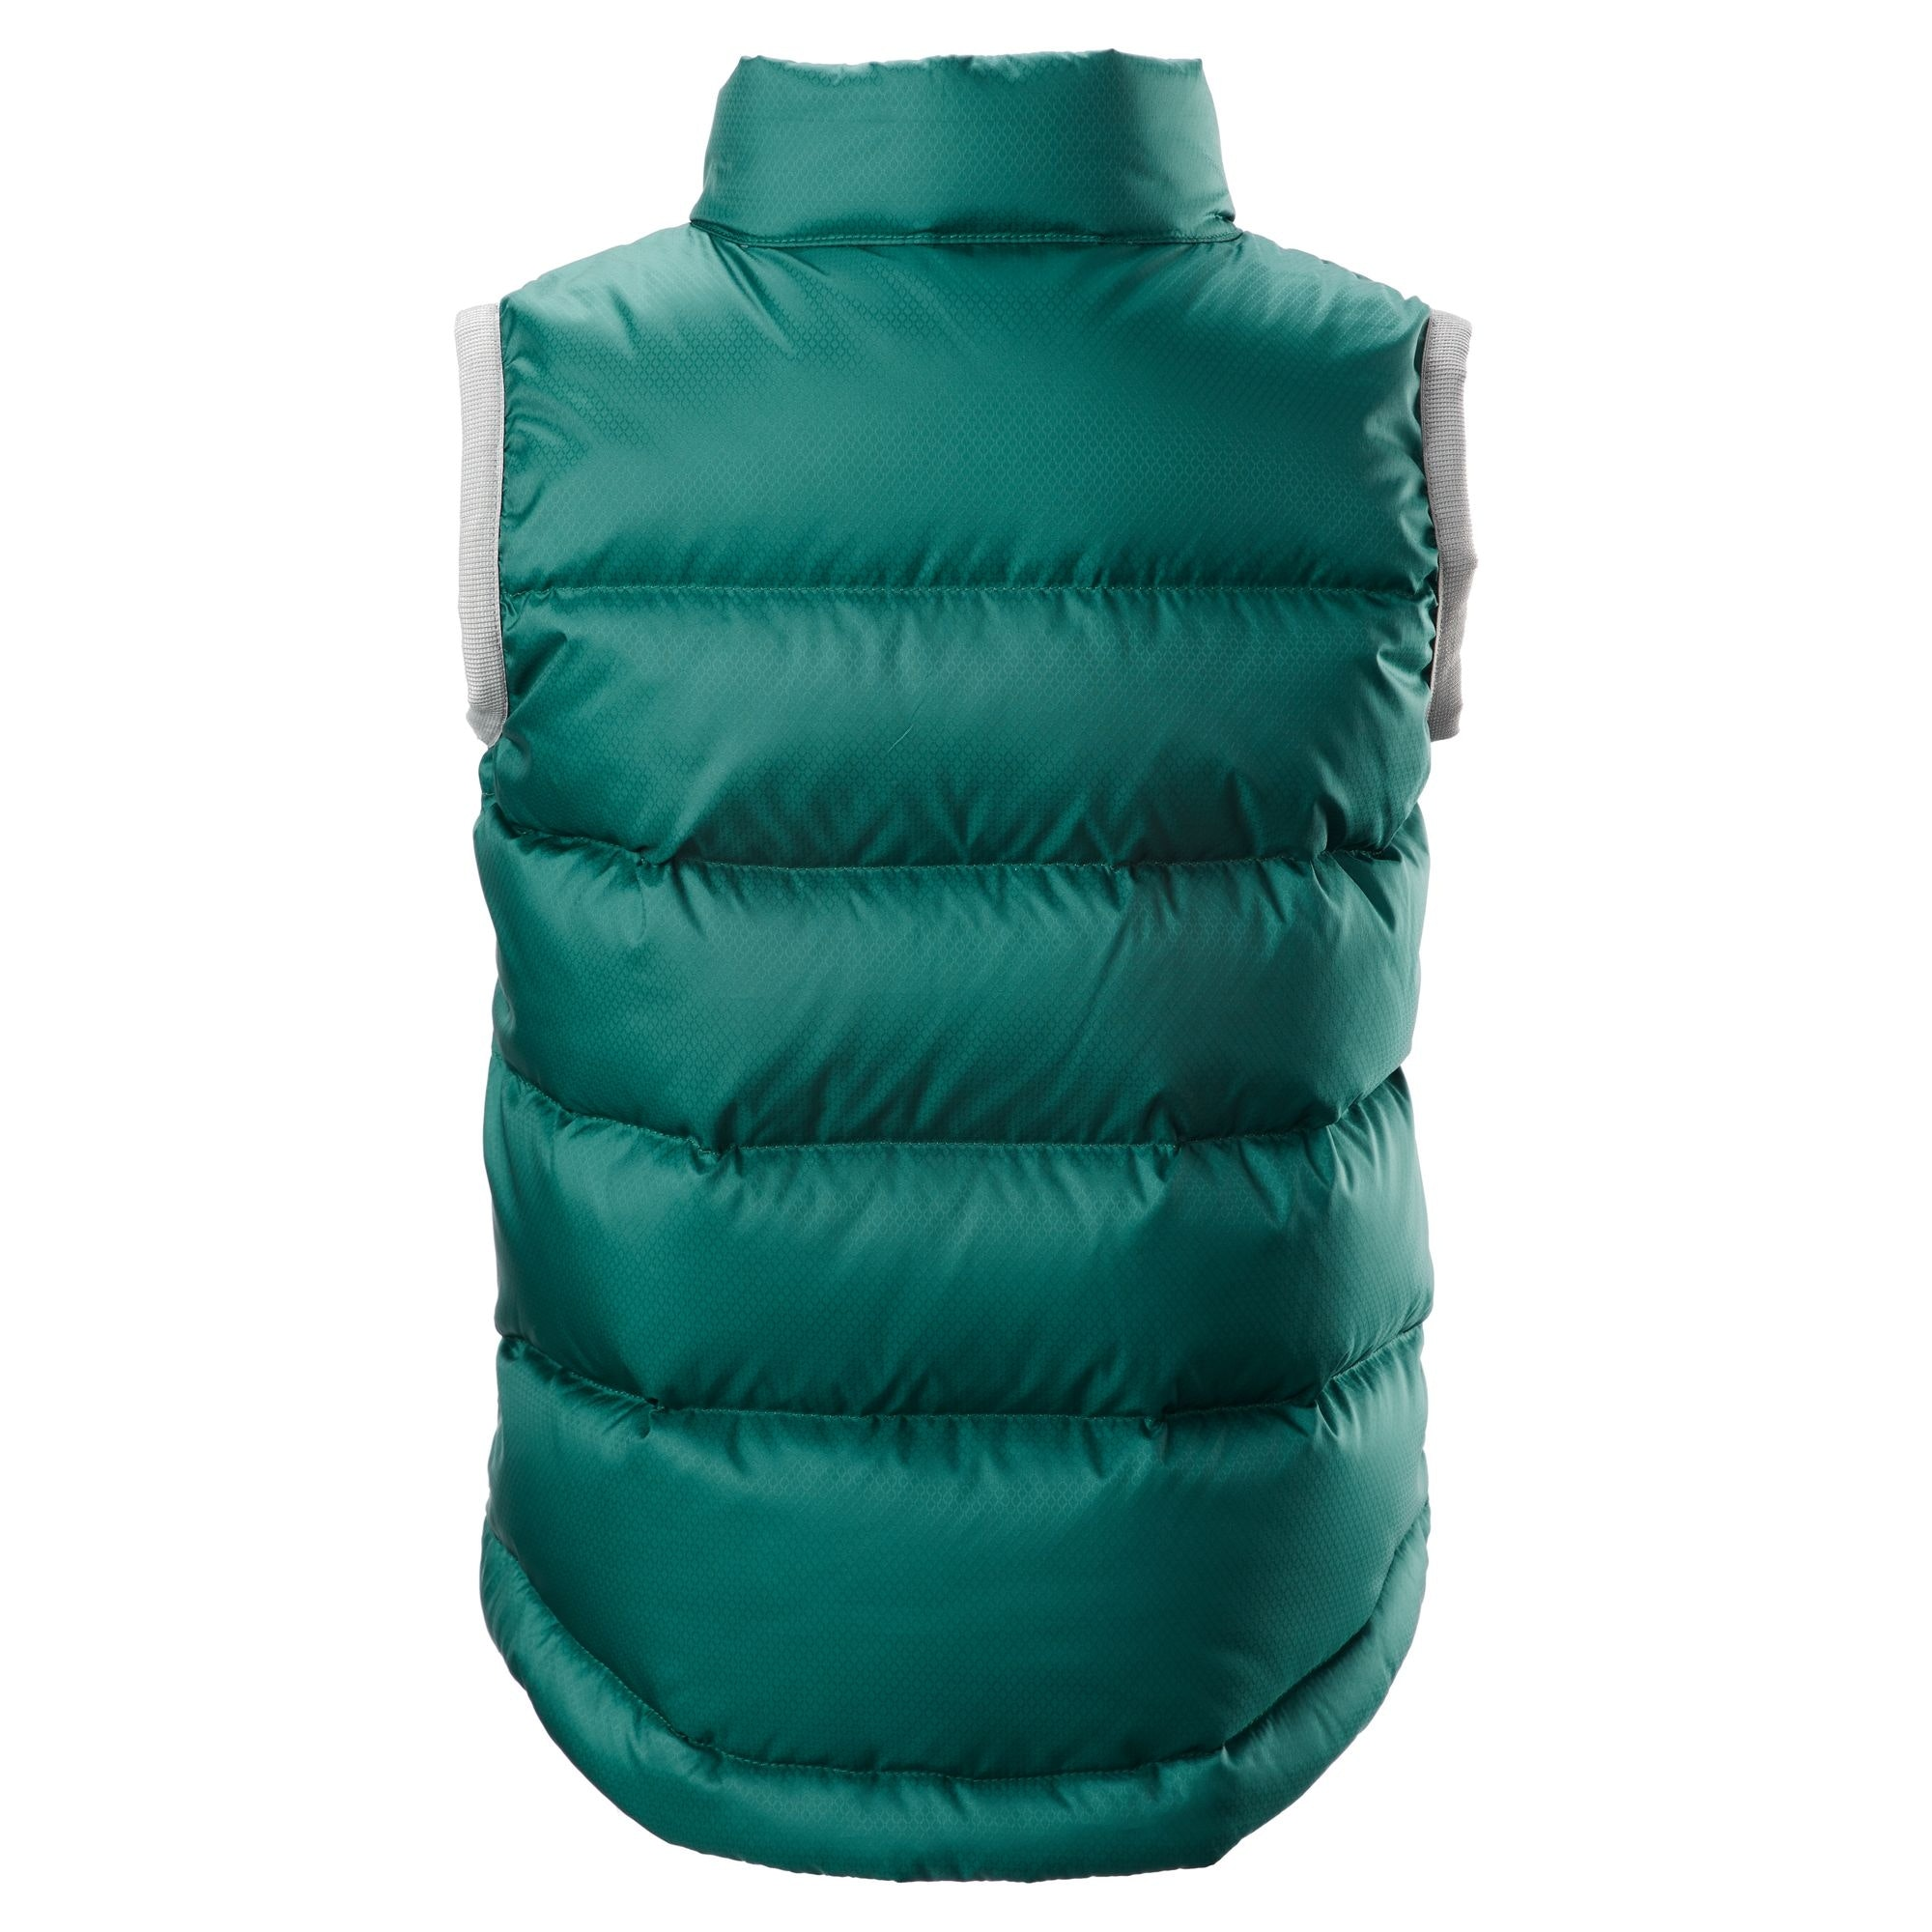 NEW-Kathmandu-Elcho-Kids-039-Boys-039-Girls-039-Warm-Winter-Outdoor-Duck-Down-Puffer-Vest thumbnail 10